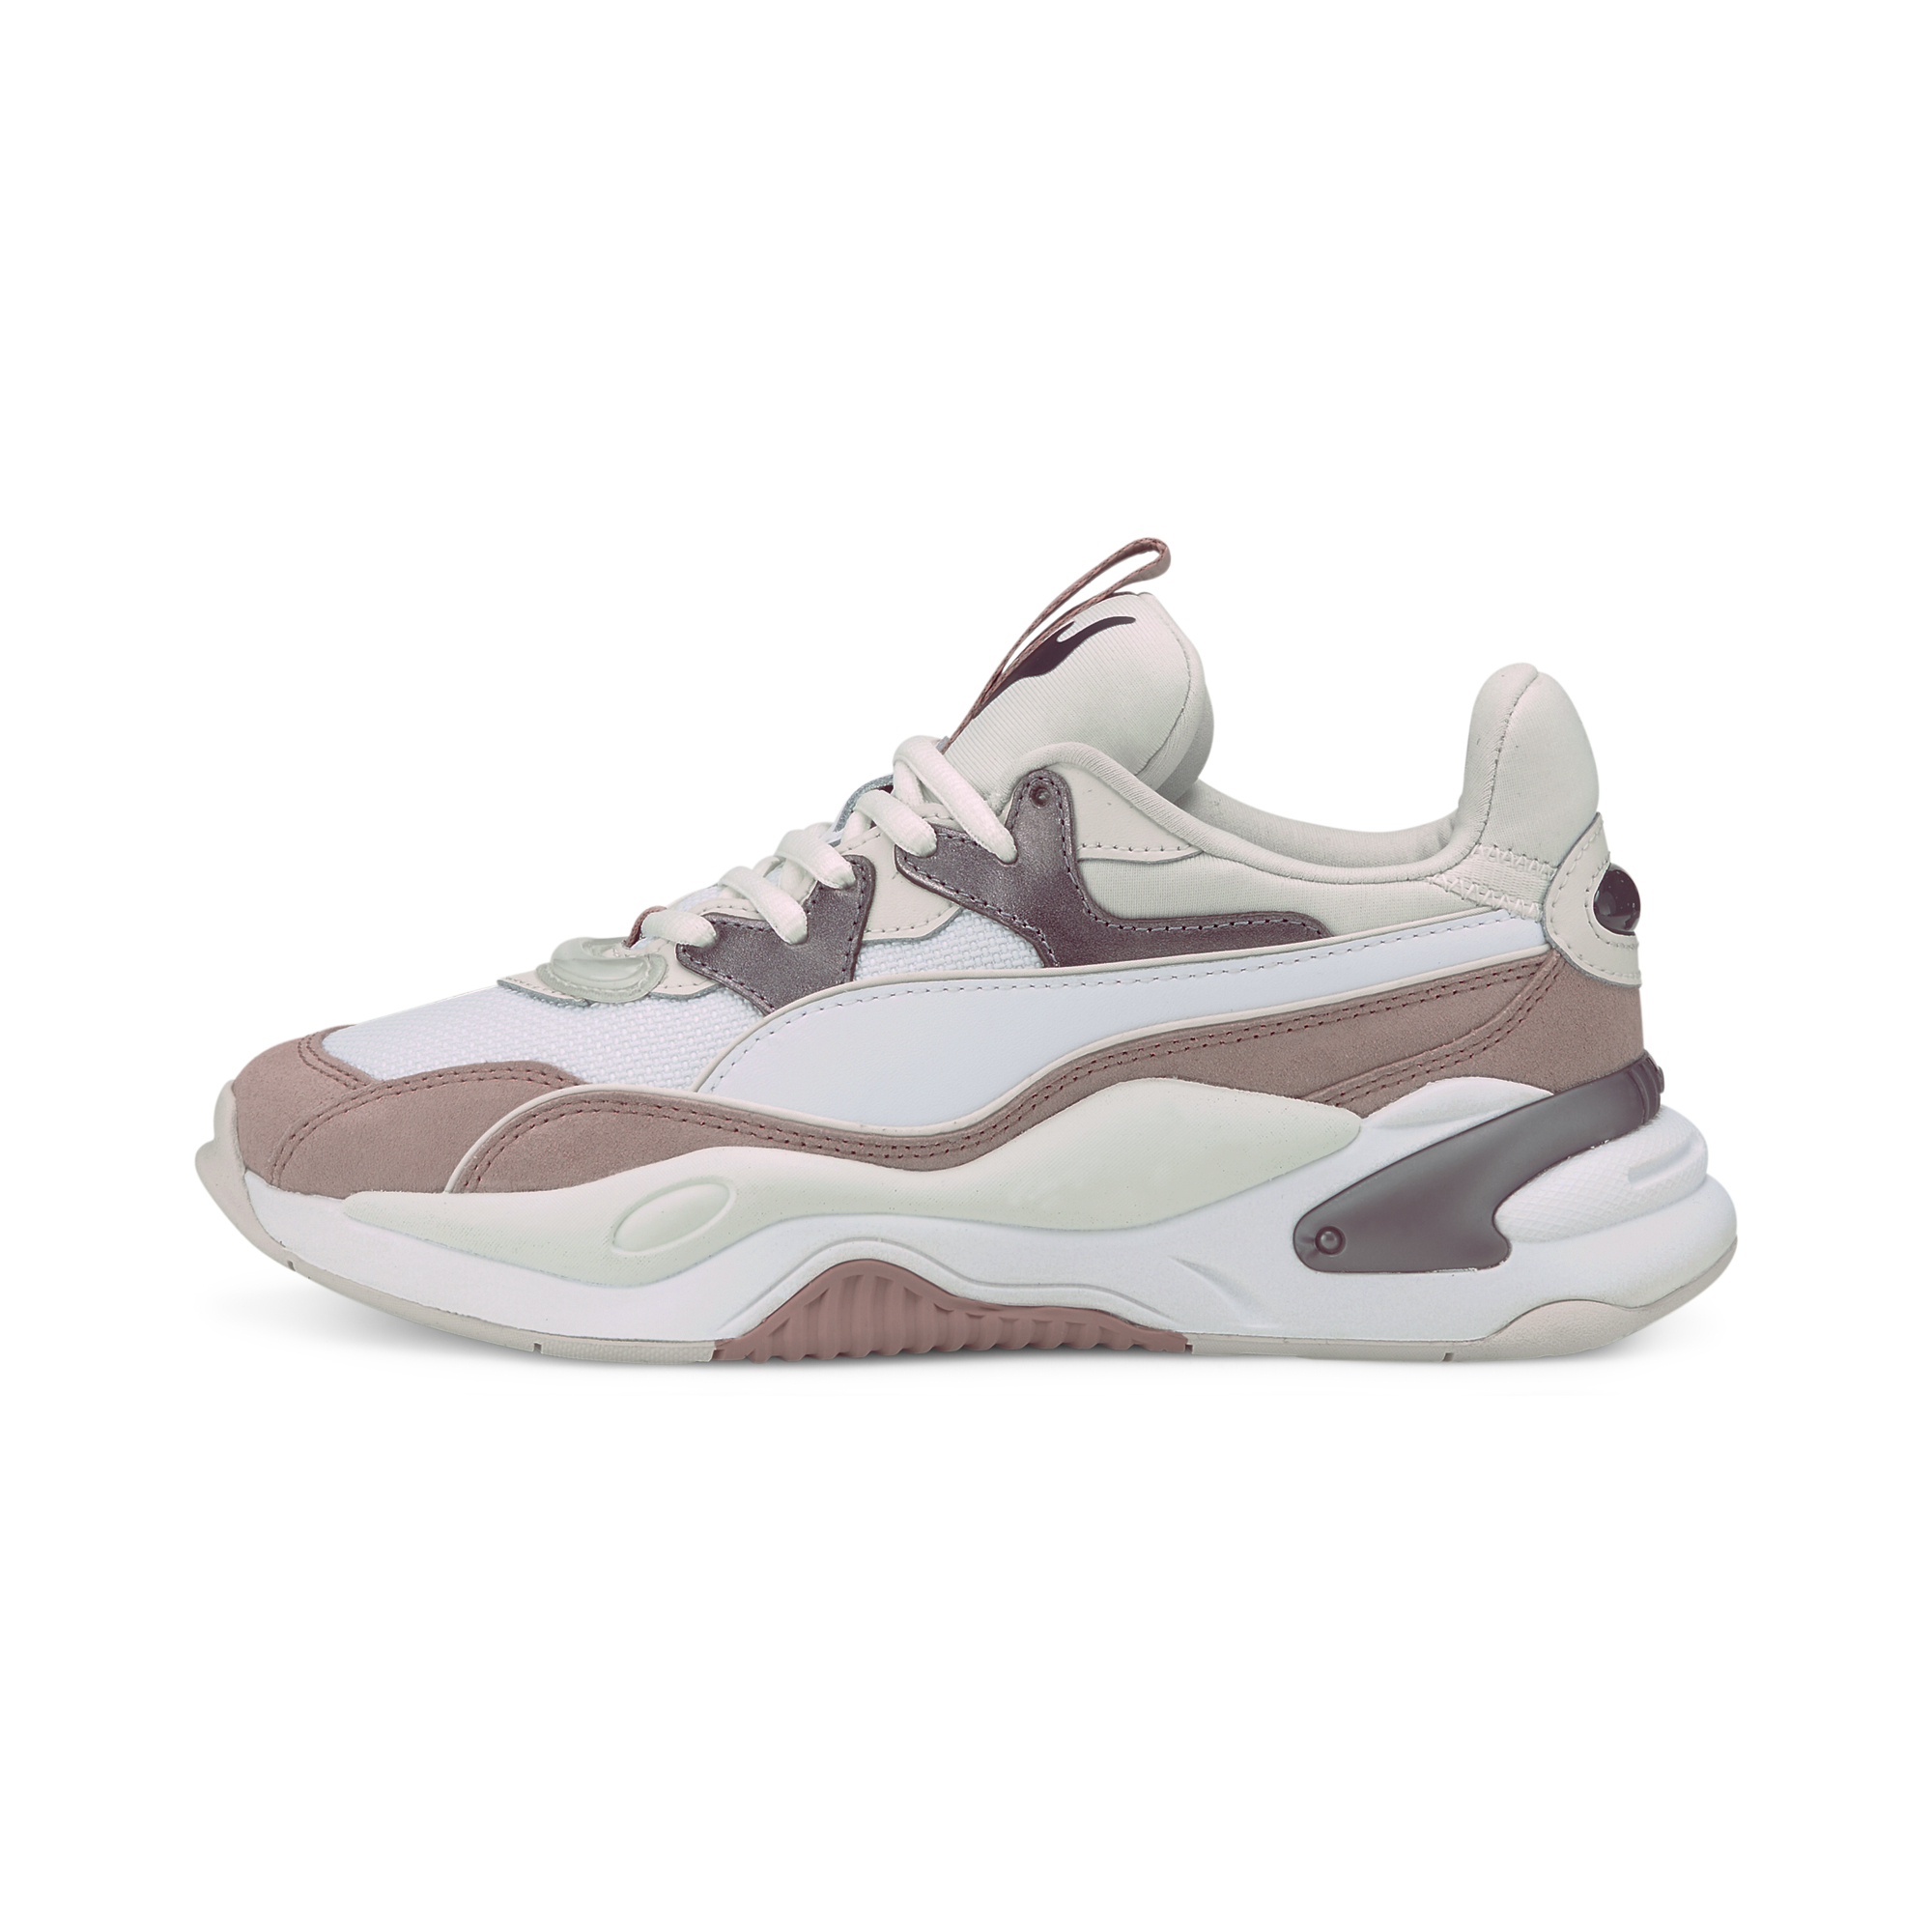 "Puma RS-2K Soft Metal Wn""s Vaporous Grey-Misty Rose 37466601"